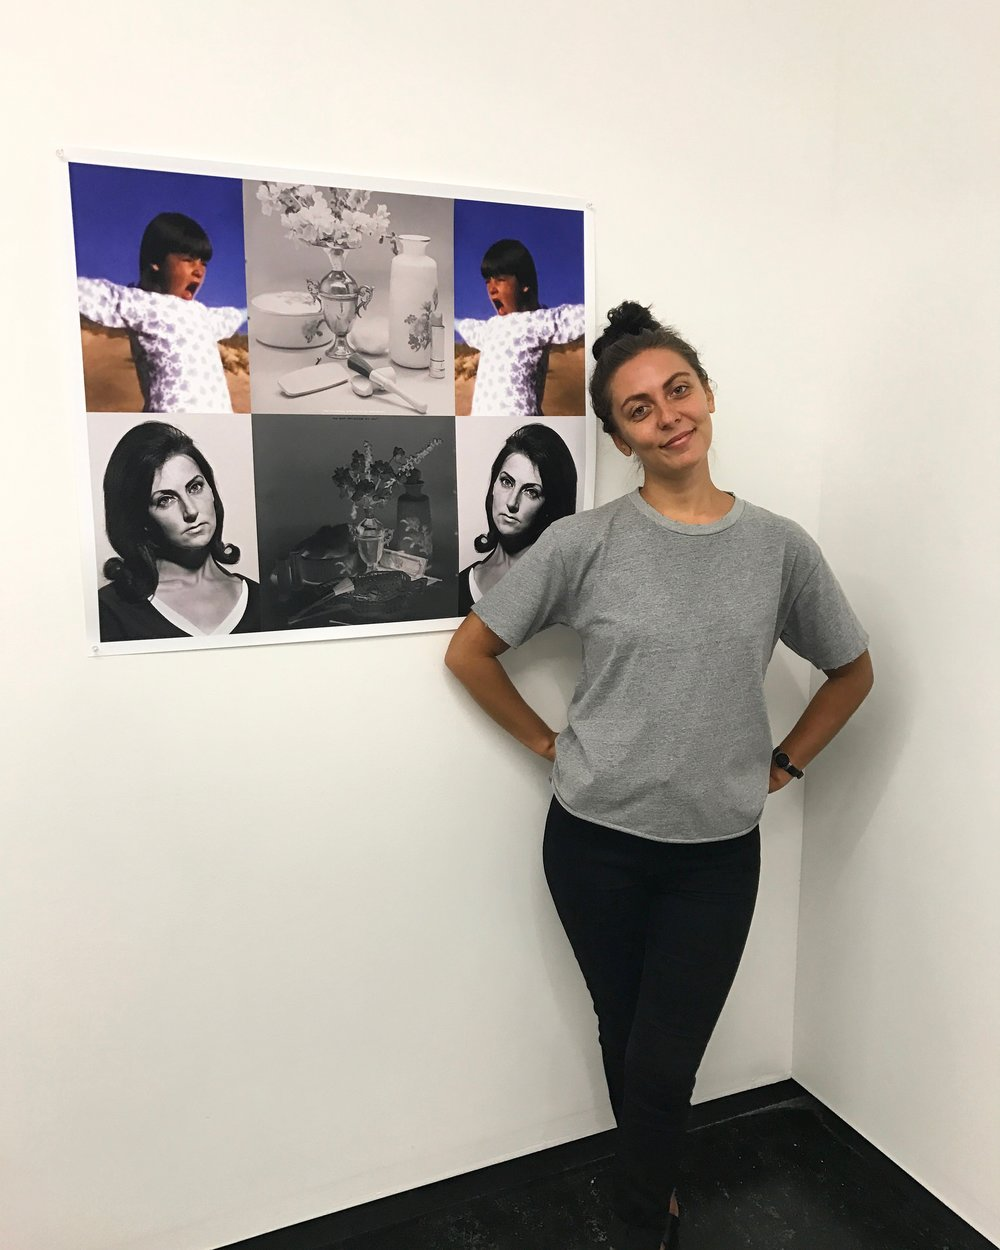 Hayley Milla-Baker with her work  Untitled (for an aboriginal)  from the  Dem Cheeky Bulls  2016-17 series.